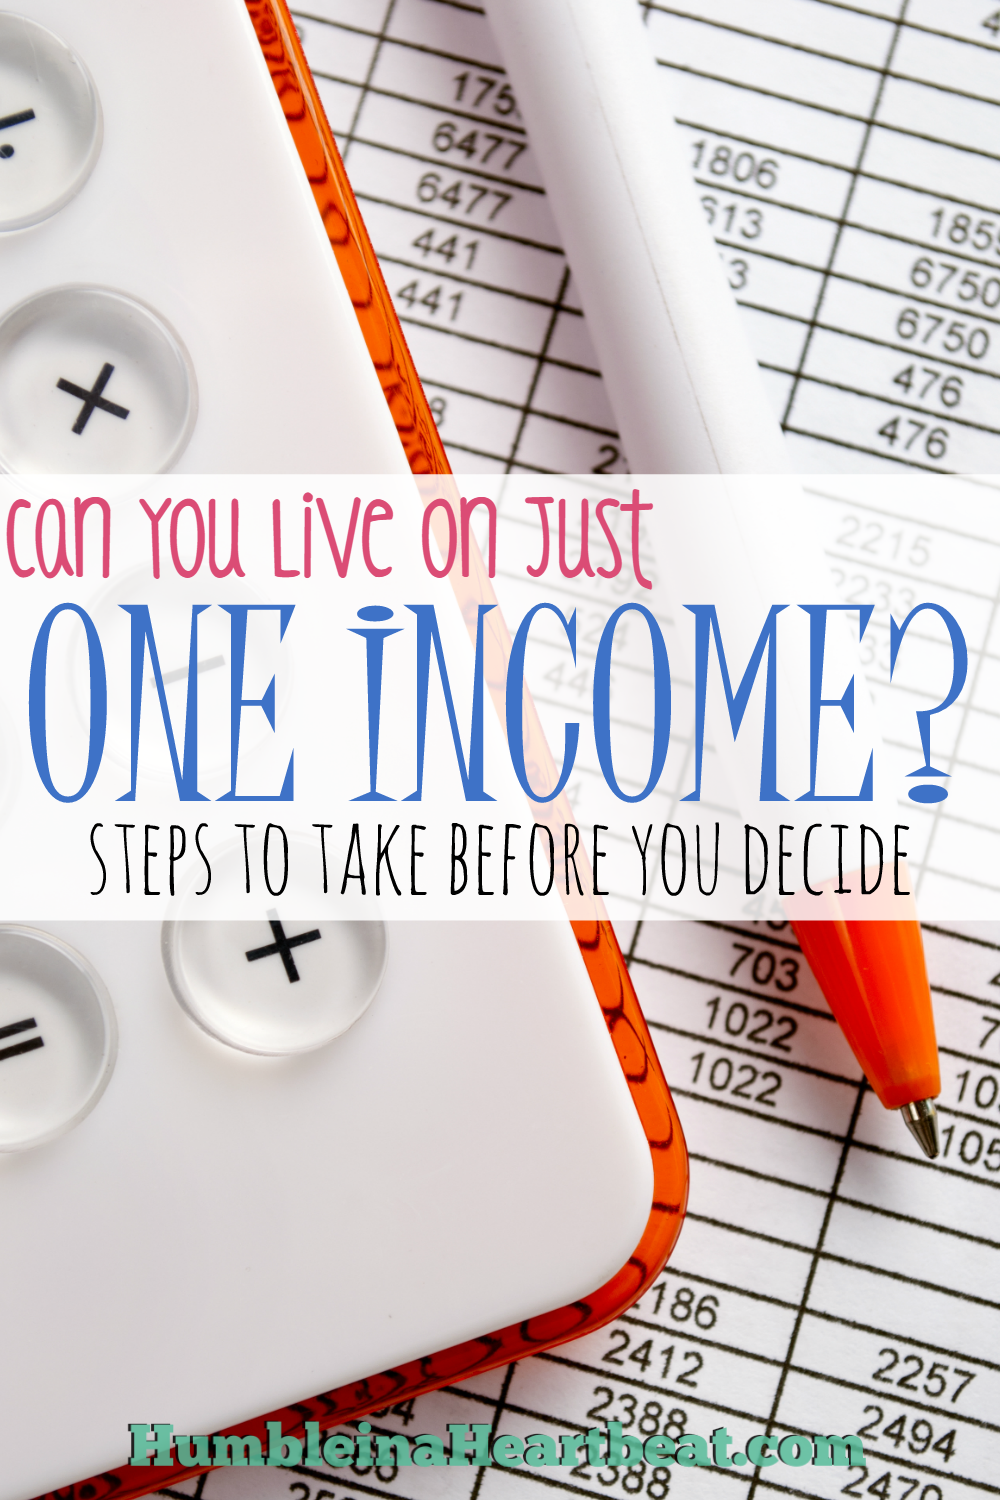 Not sure if you can go from two incomes to one? Before you take the plunge, evaluate your expenses and how they might change when you are down to just one income. This post can guide you in doing that.